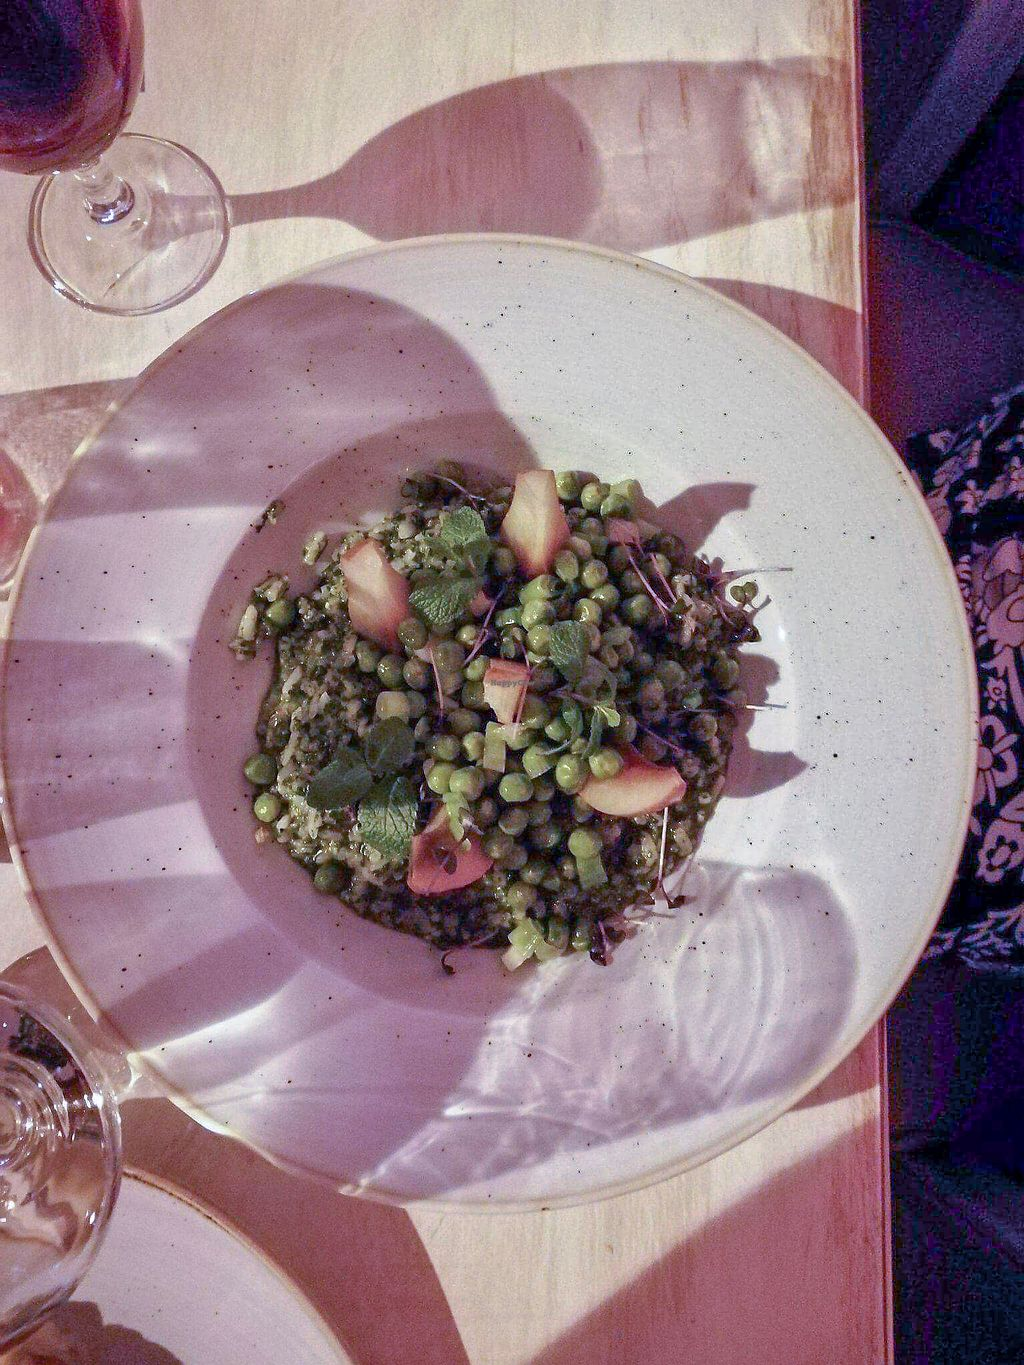 """Photo of Glow  by <a href=""""/members/profile/TatyanaMatveyeva"""">TatyanaMatveyeva</a> <br/>Risotto wit spinach and pears  <br/> December 31, 2017  - <a href='/contact/abuse/image/107923/341448'>Report</a>"""